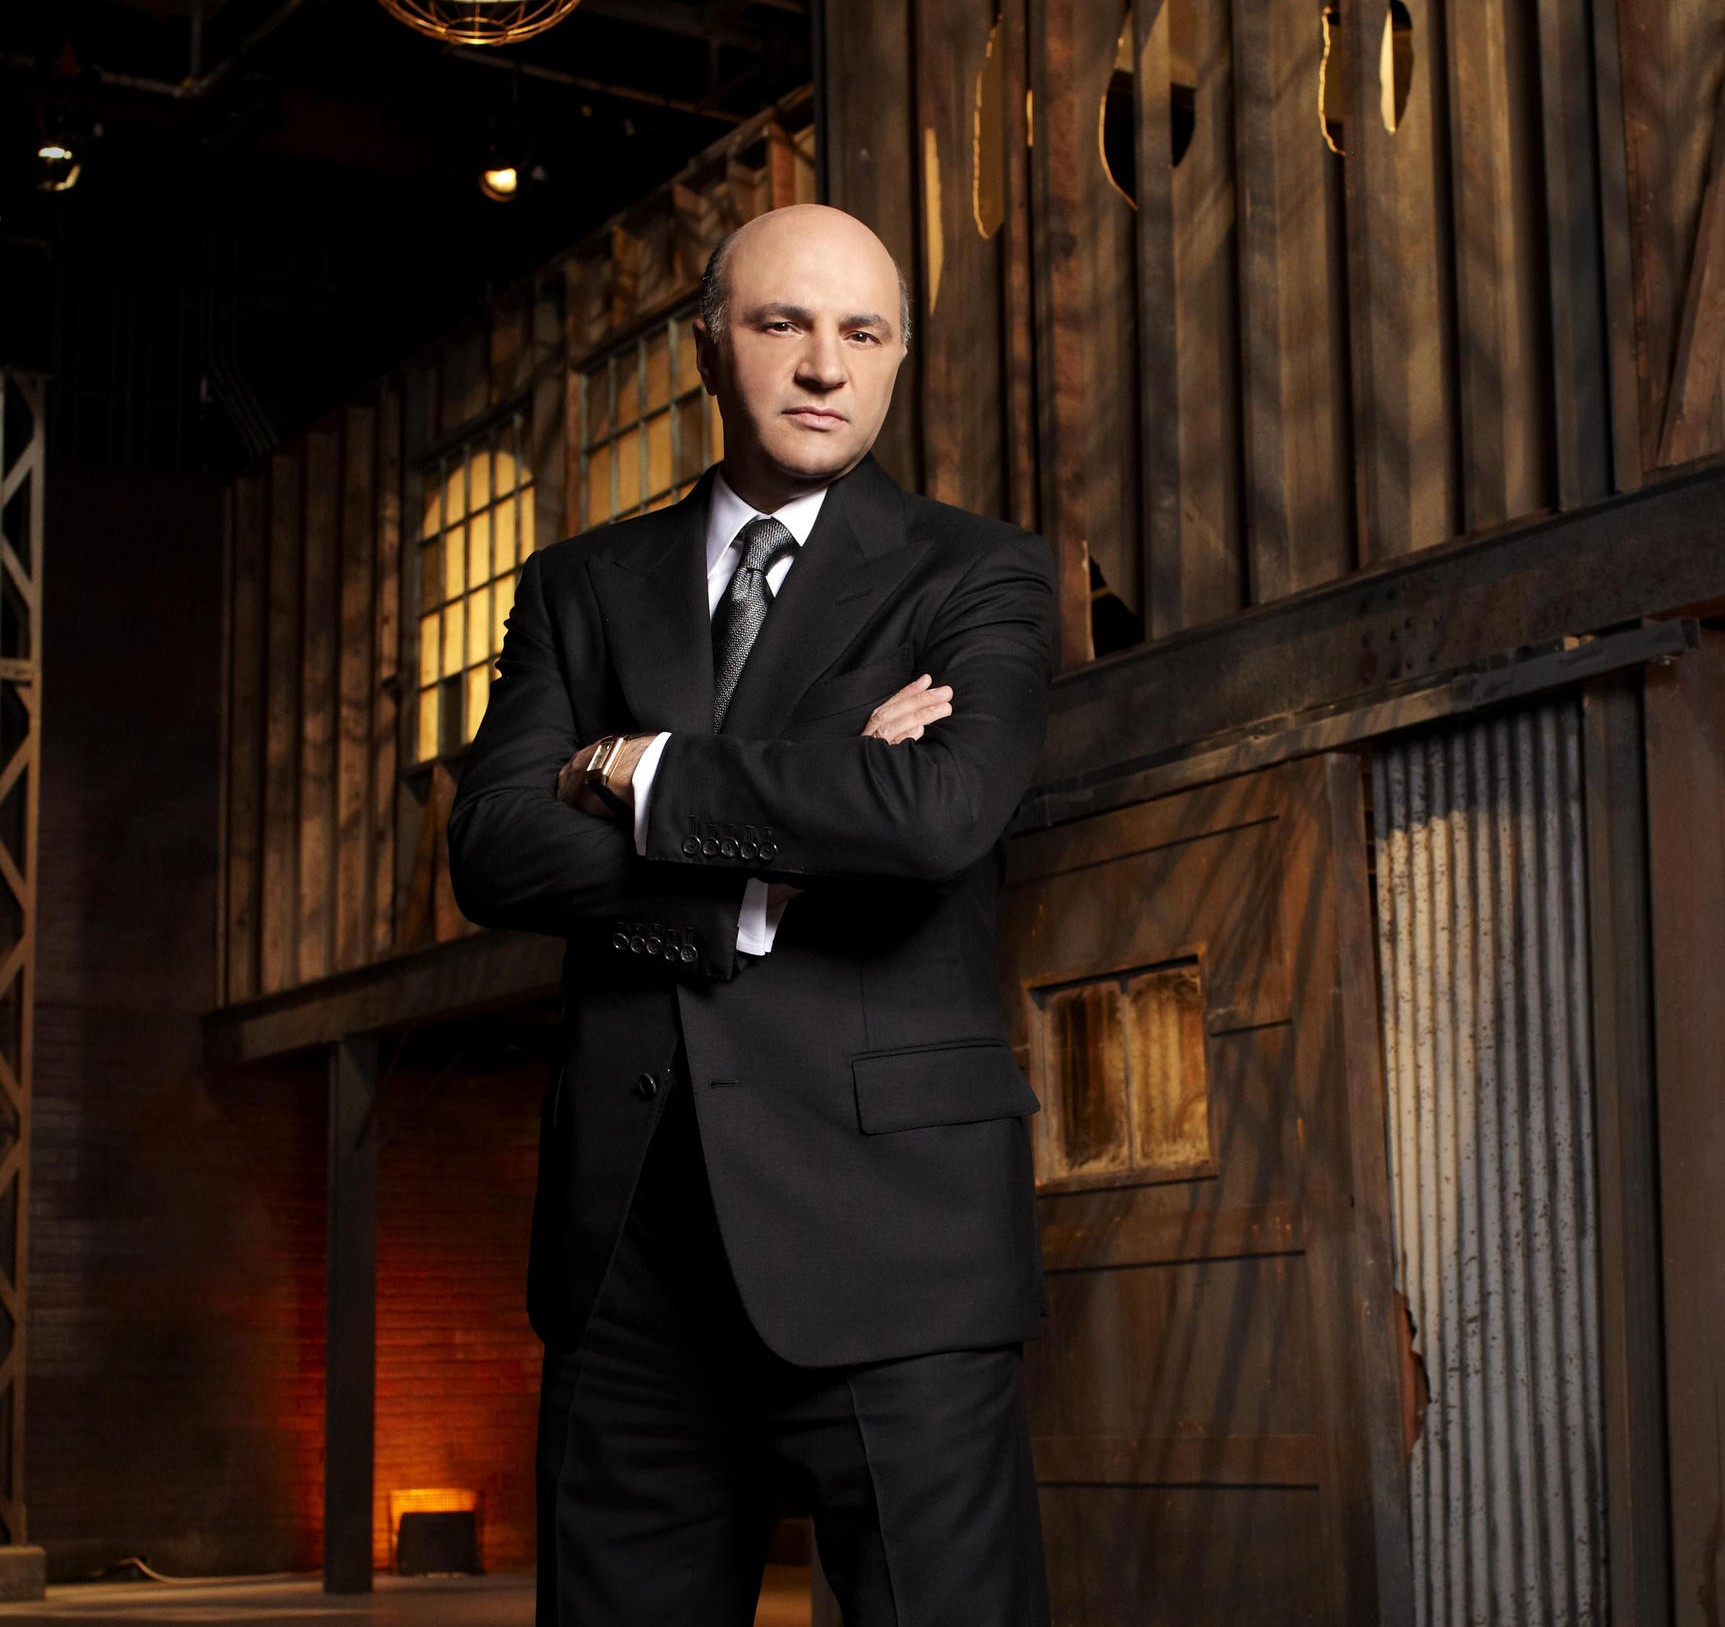 Dragons' Den star Kevin O'Leary; Photo by Greg Paupst